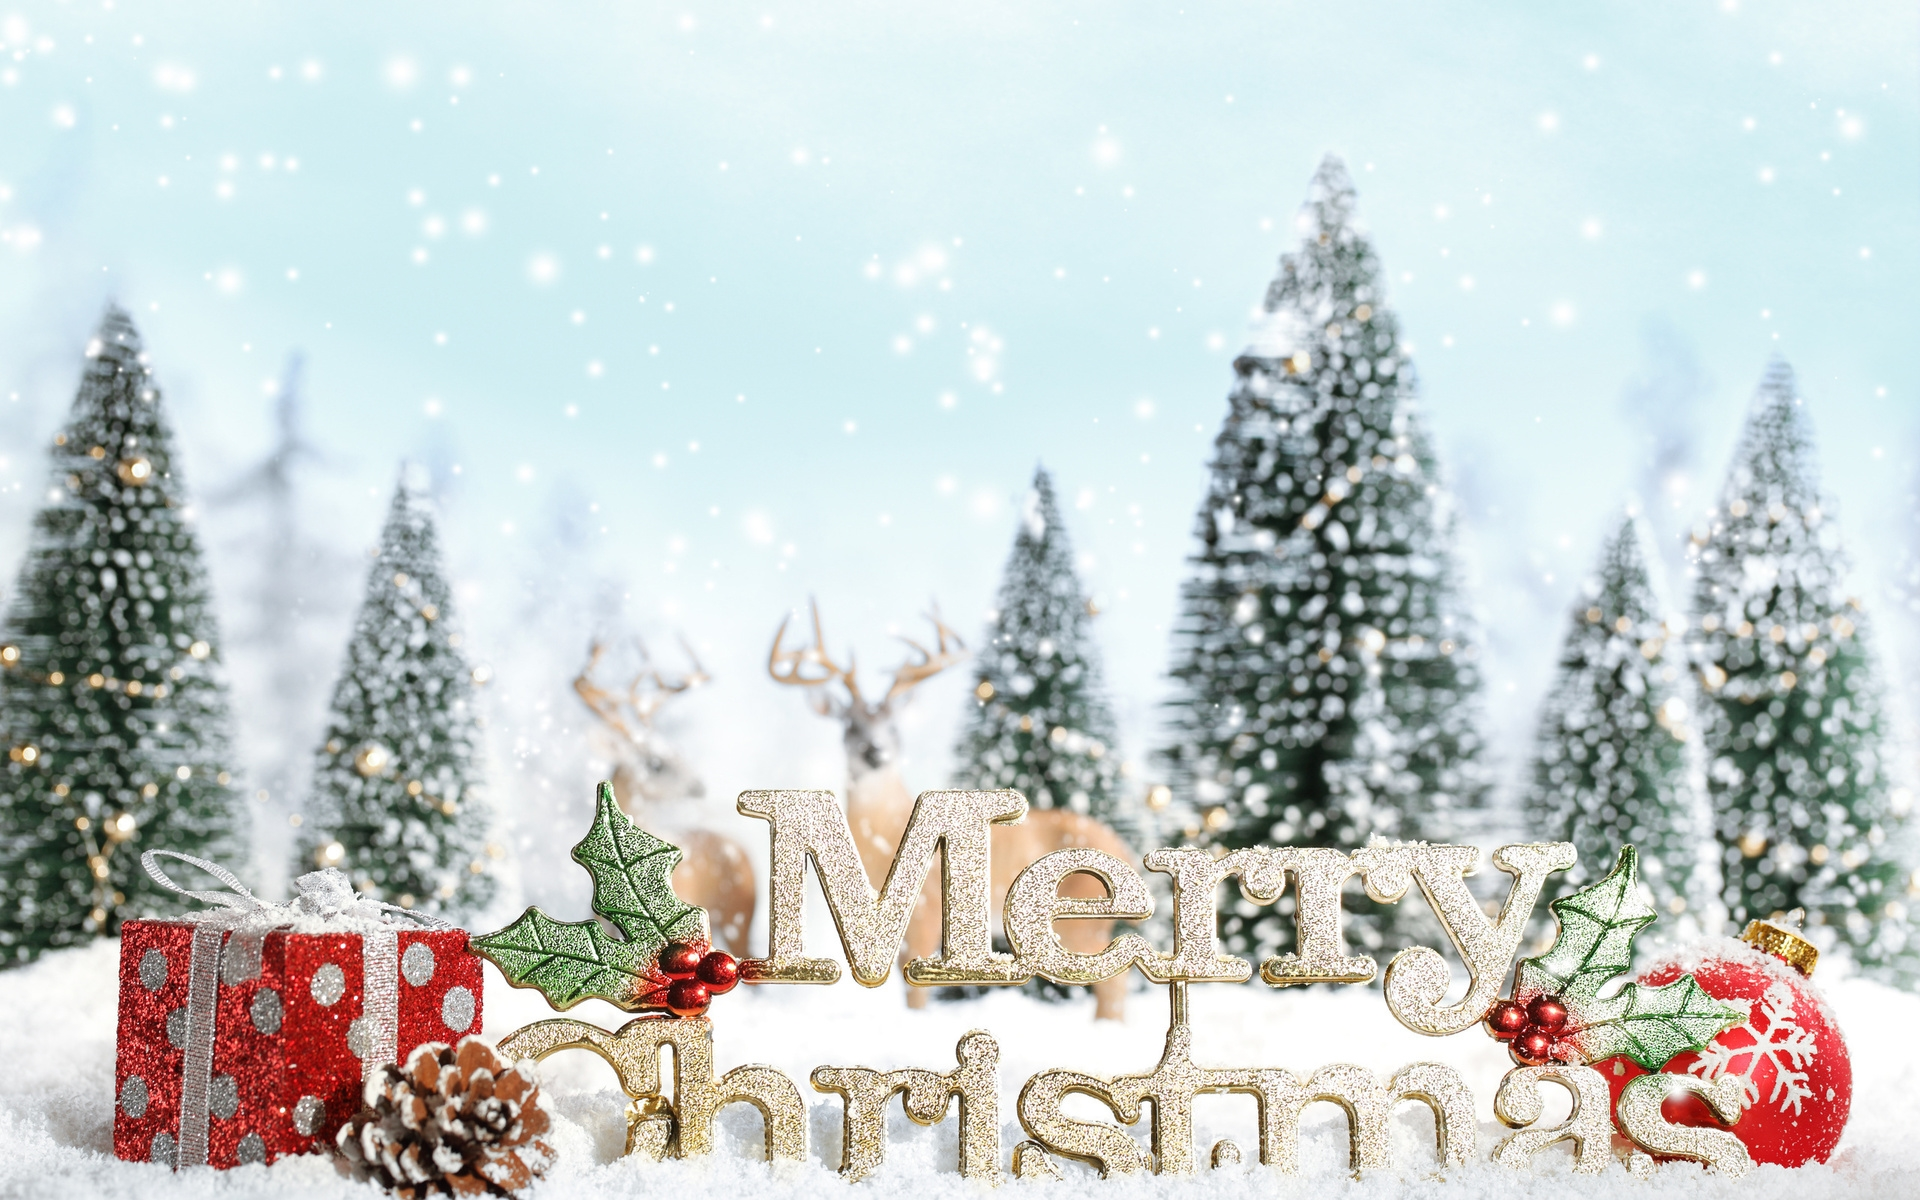 merry christmas background wallpaper 1920x1200